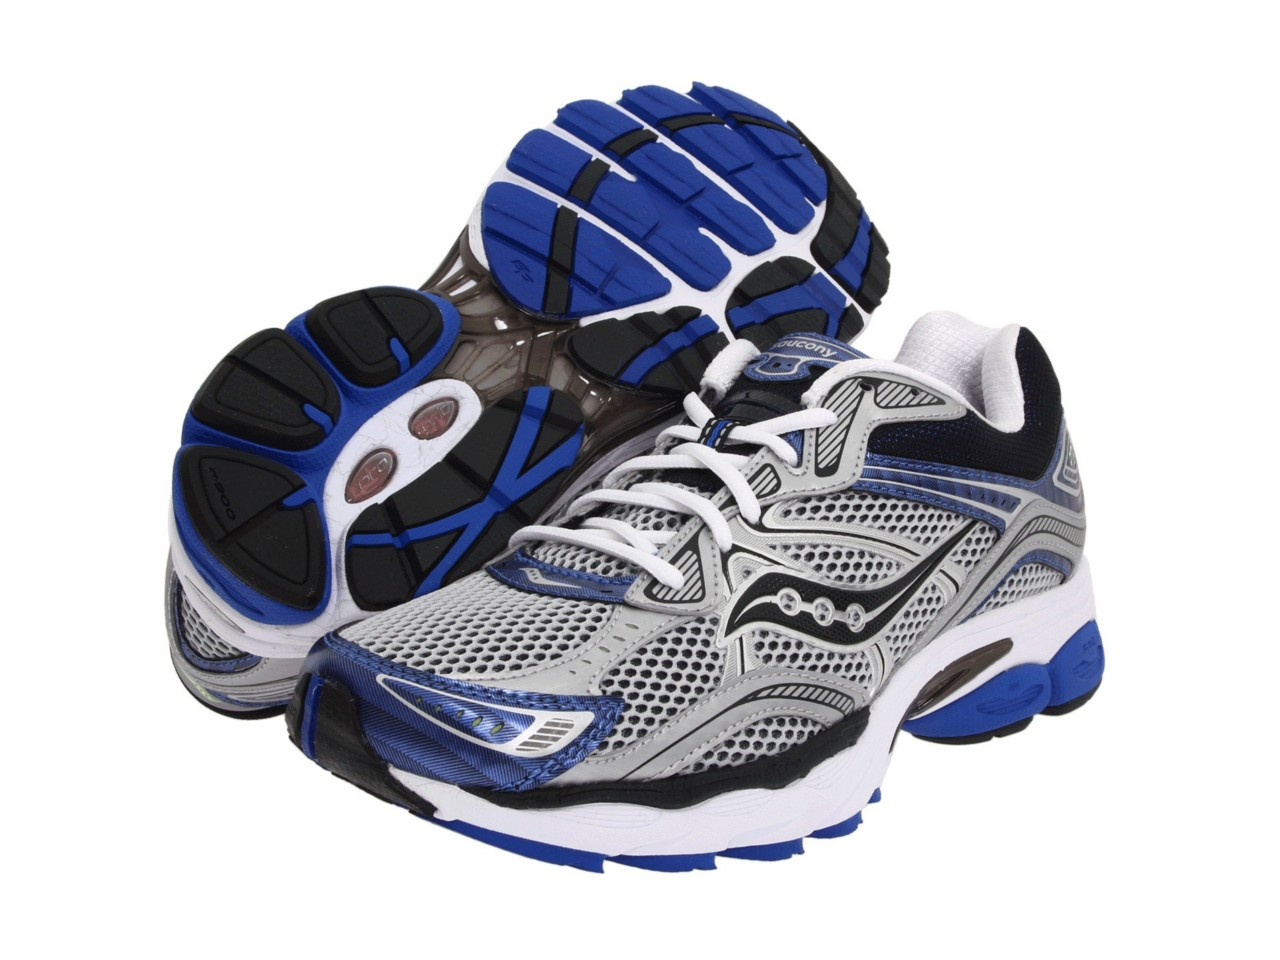 Saucony-Mens-ProGrid-Omni-10-Running-Shoe-Sneaker-Silver-Royal